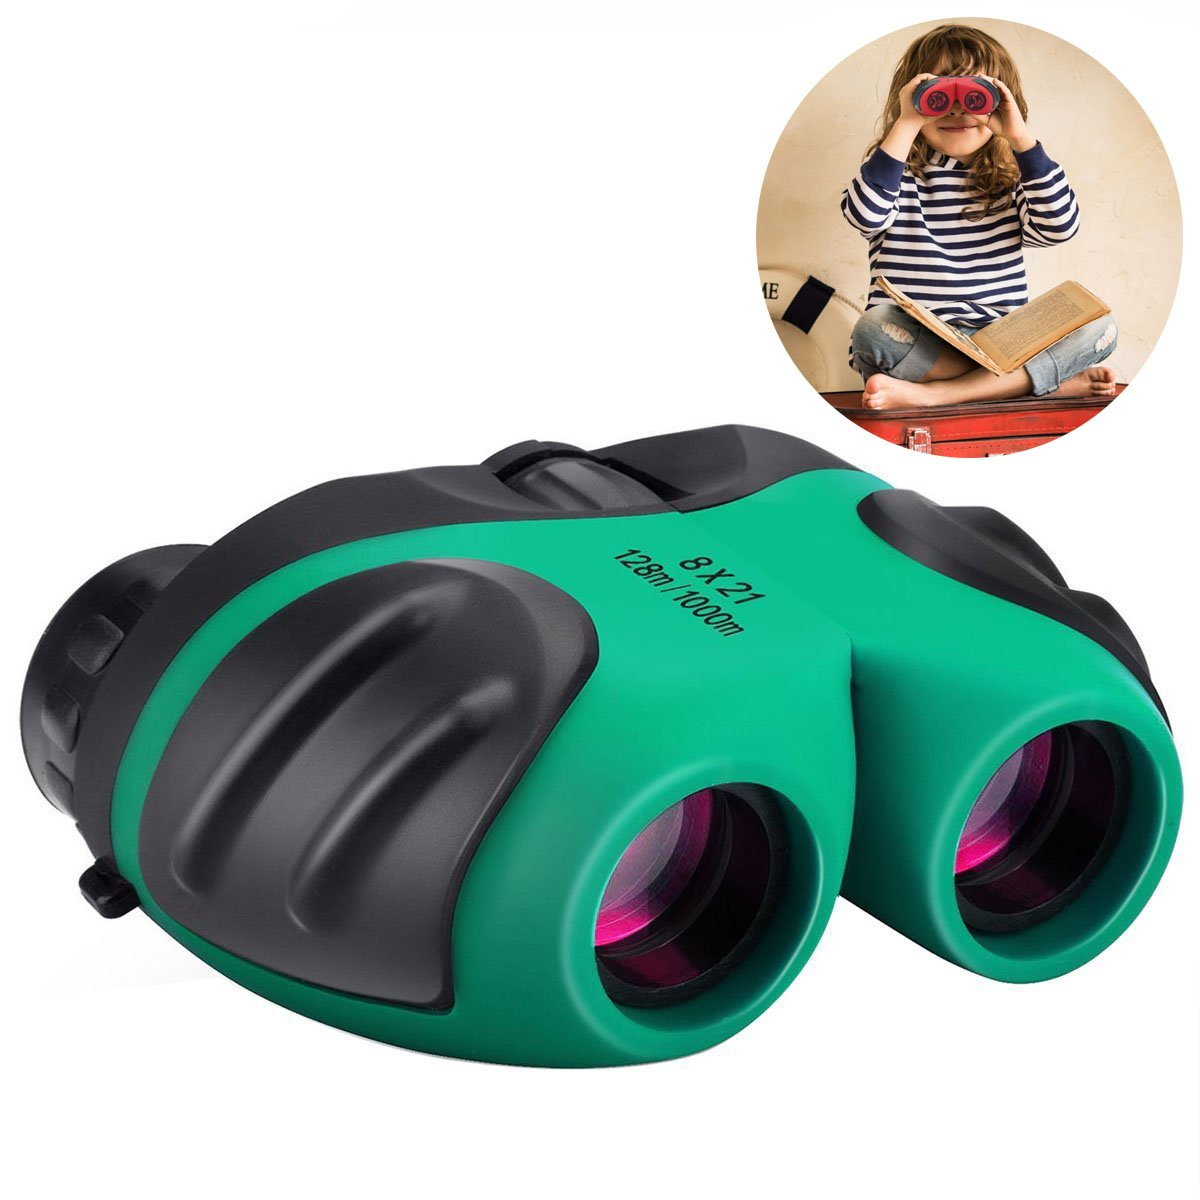 Happy Gift Compact Shock Proof 8x21 Kids Binoculars- Best Gifts for Boys and Girls